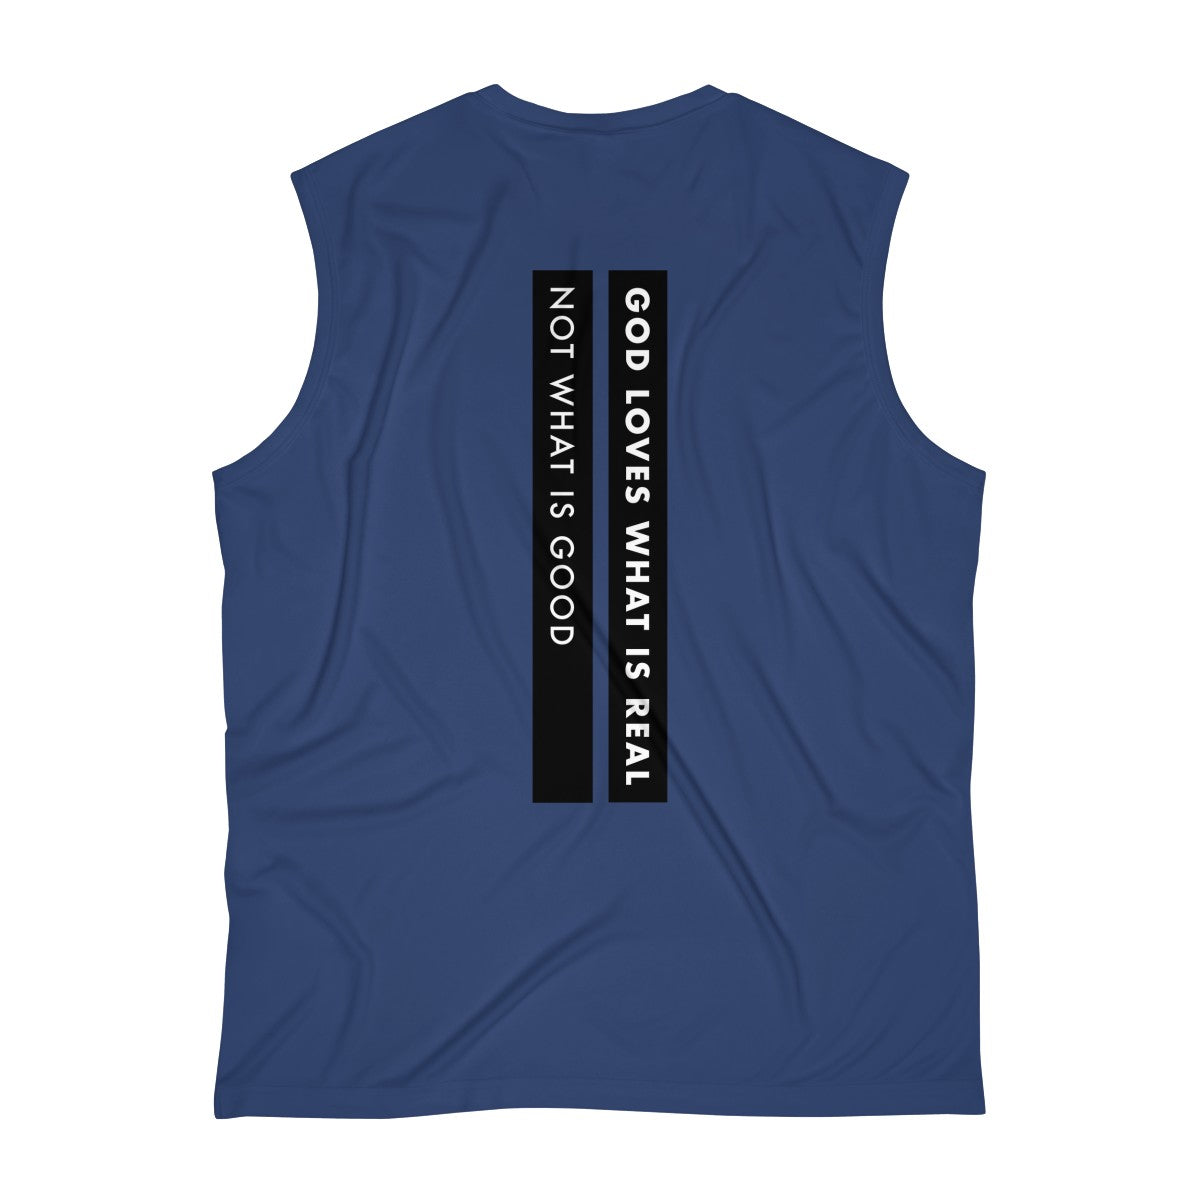 God Loves What Is Real Not What Is Good Men's Sleeveless Performance Tee